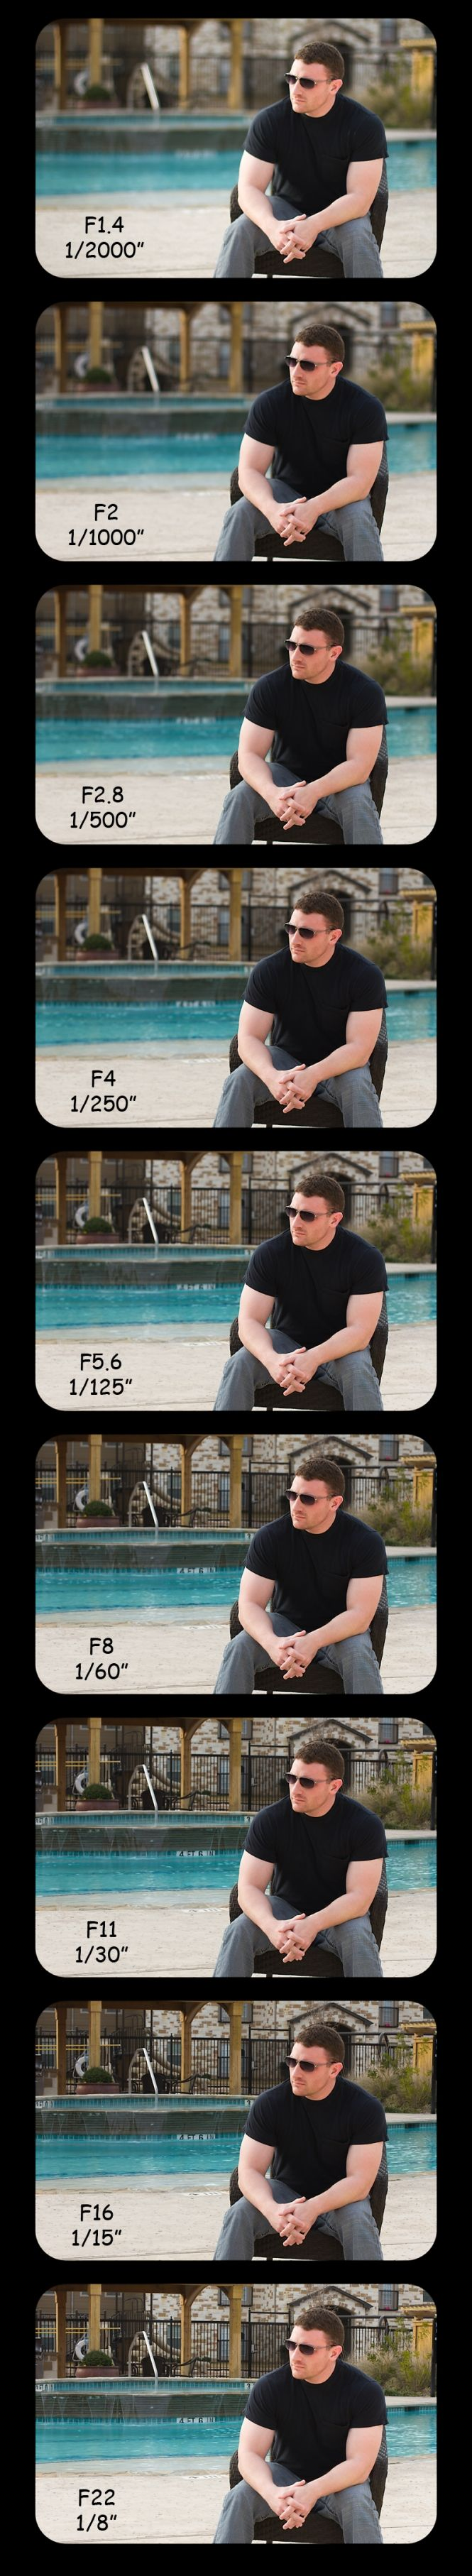 Aperture Depth of Field Comparison